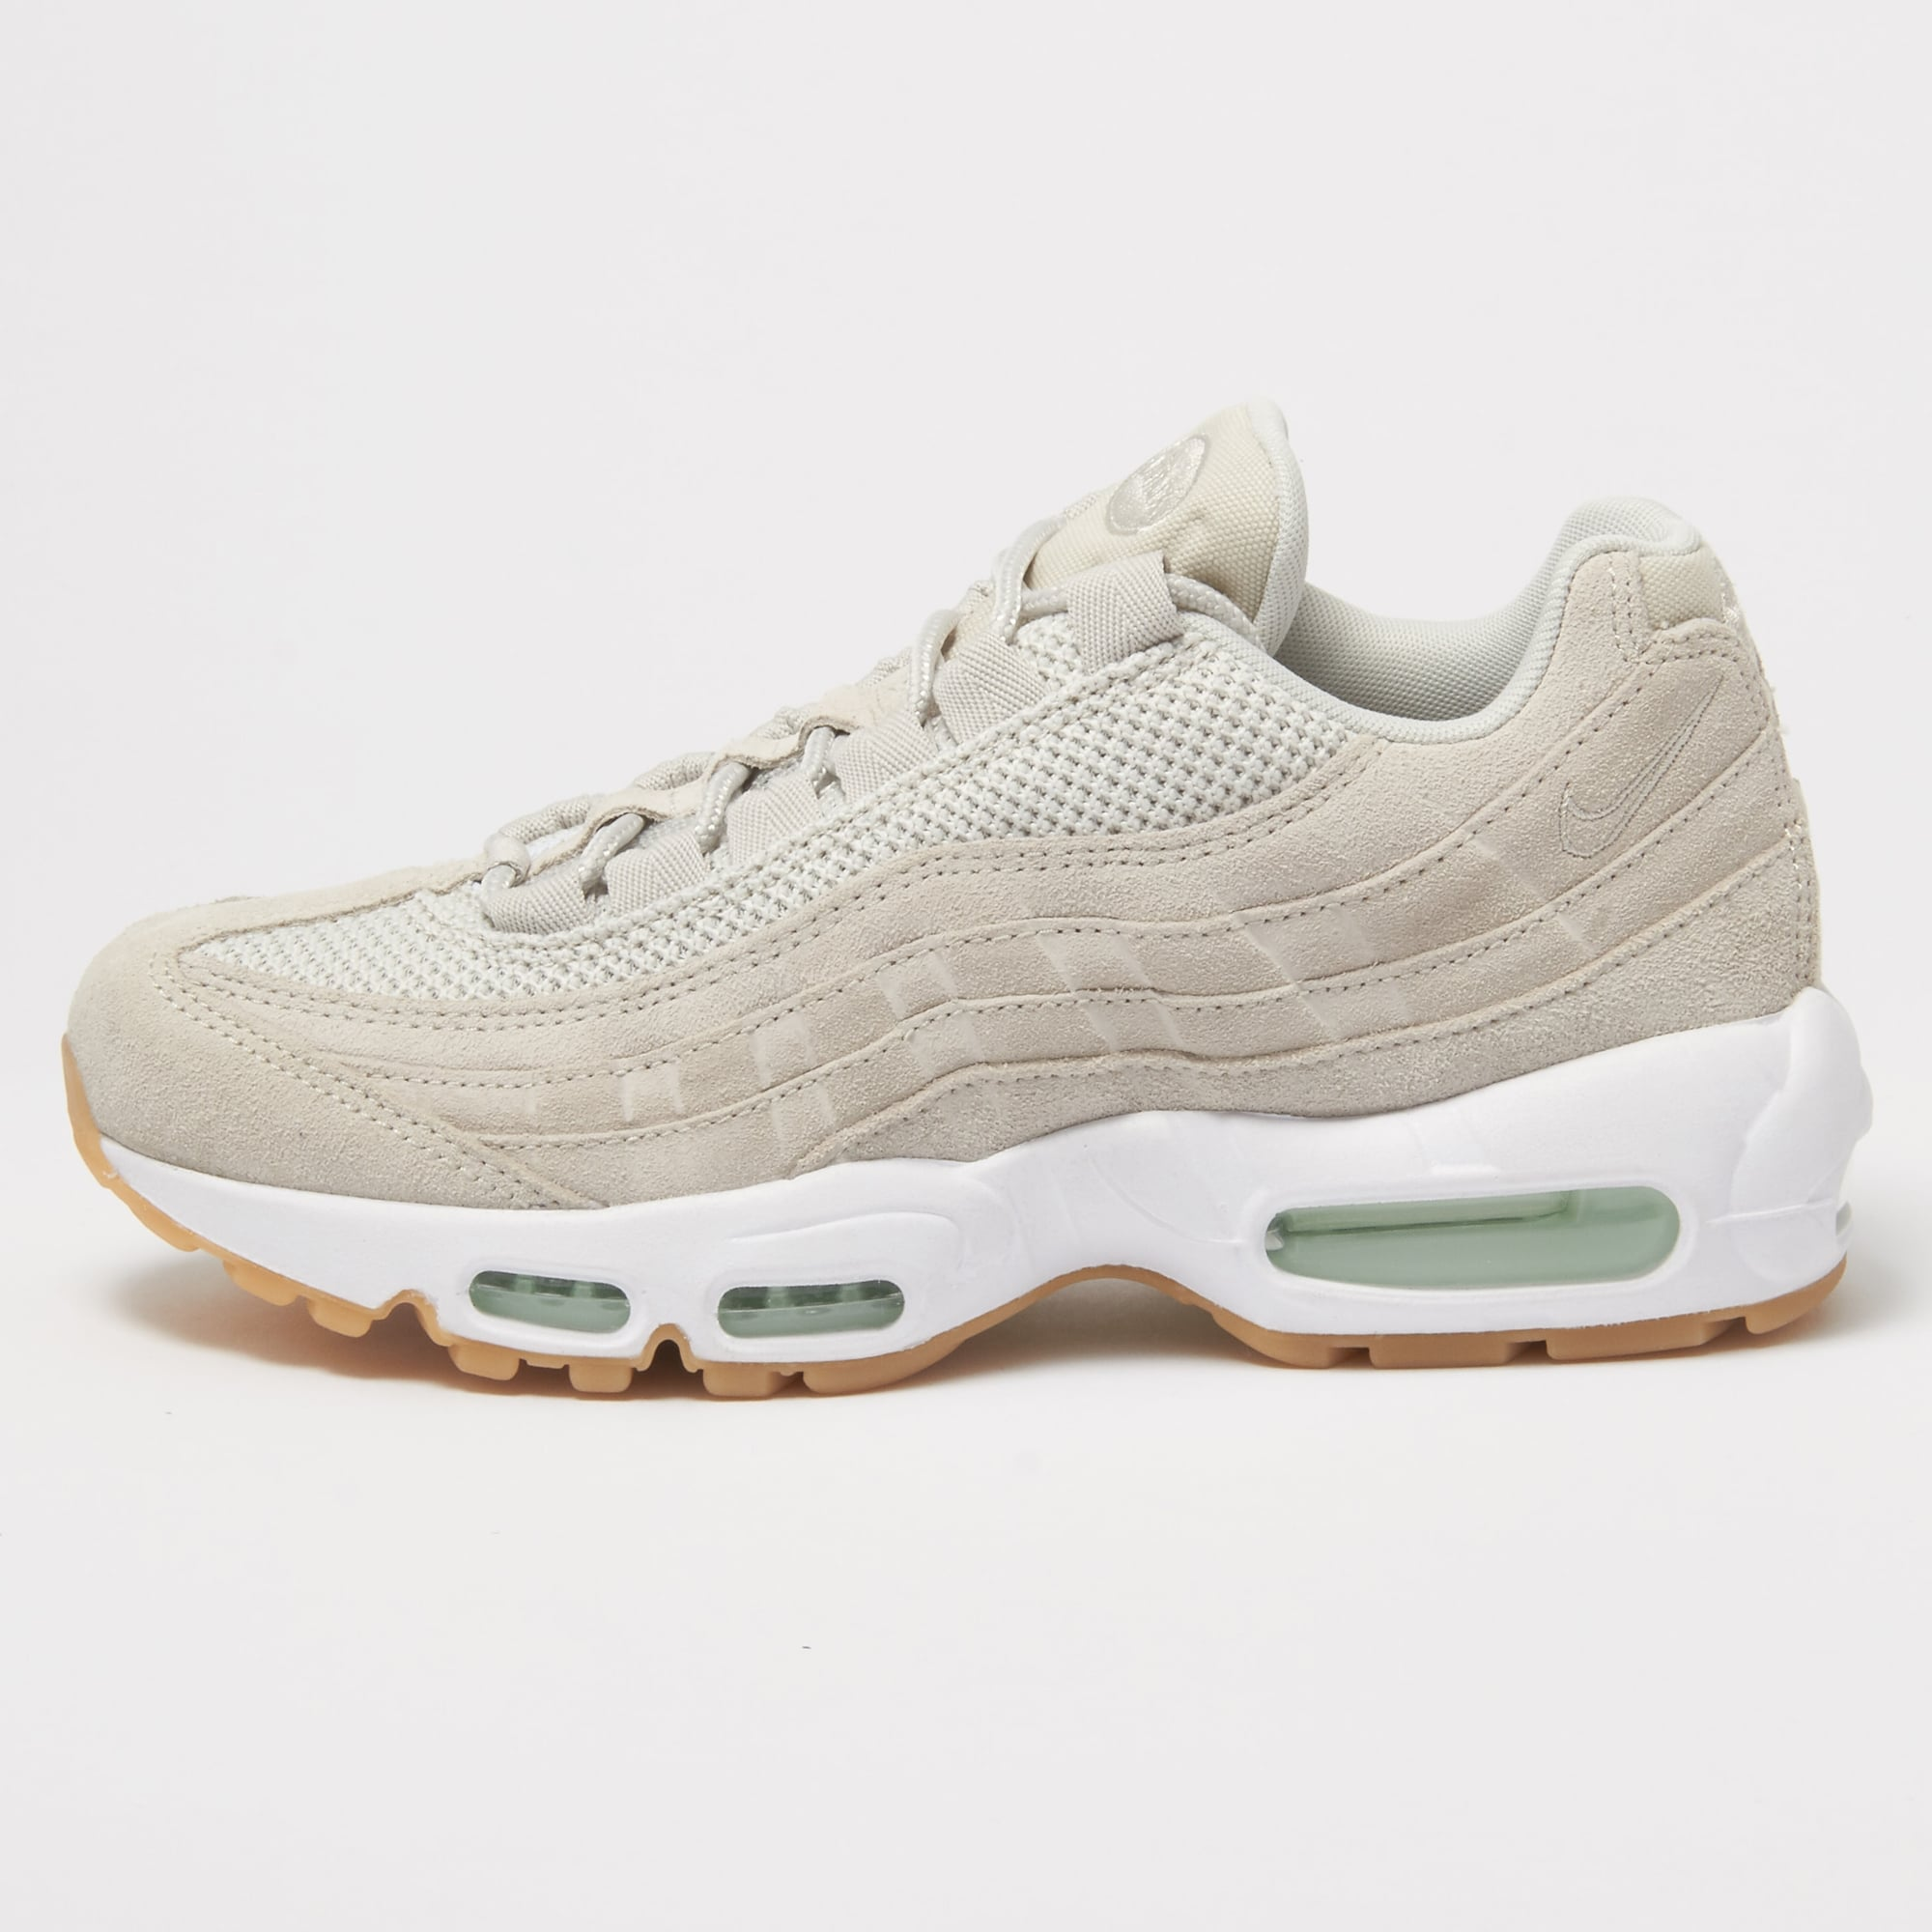 nike womens air max 95 pink oxford nz